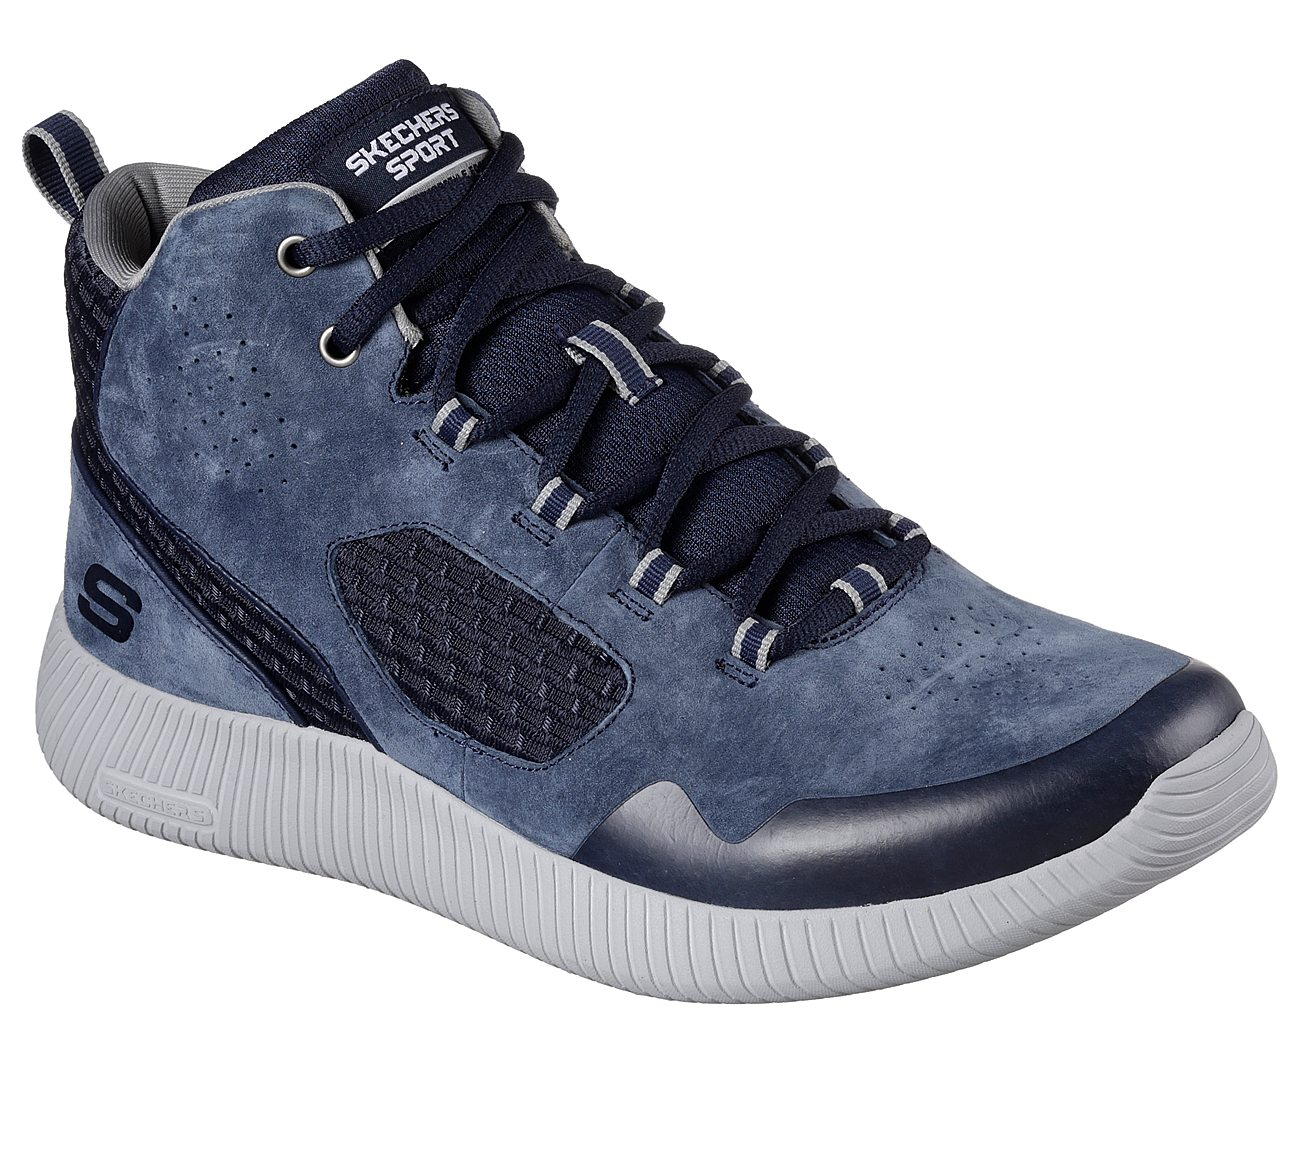 f87eea624d8 Buy SKECHERS Depth Charge - Drango Active Shoes only $115.00